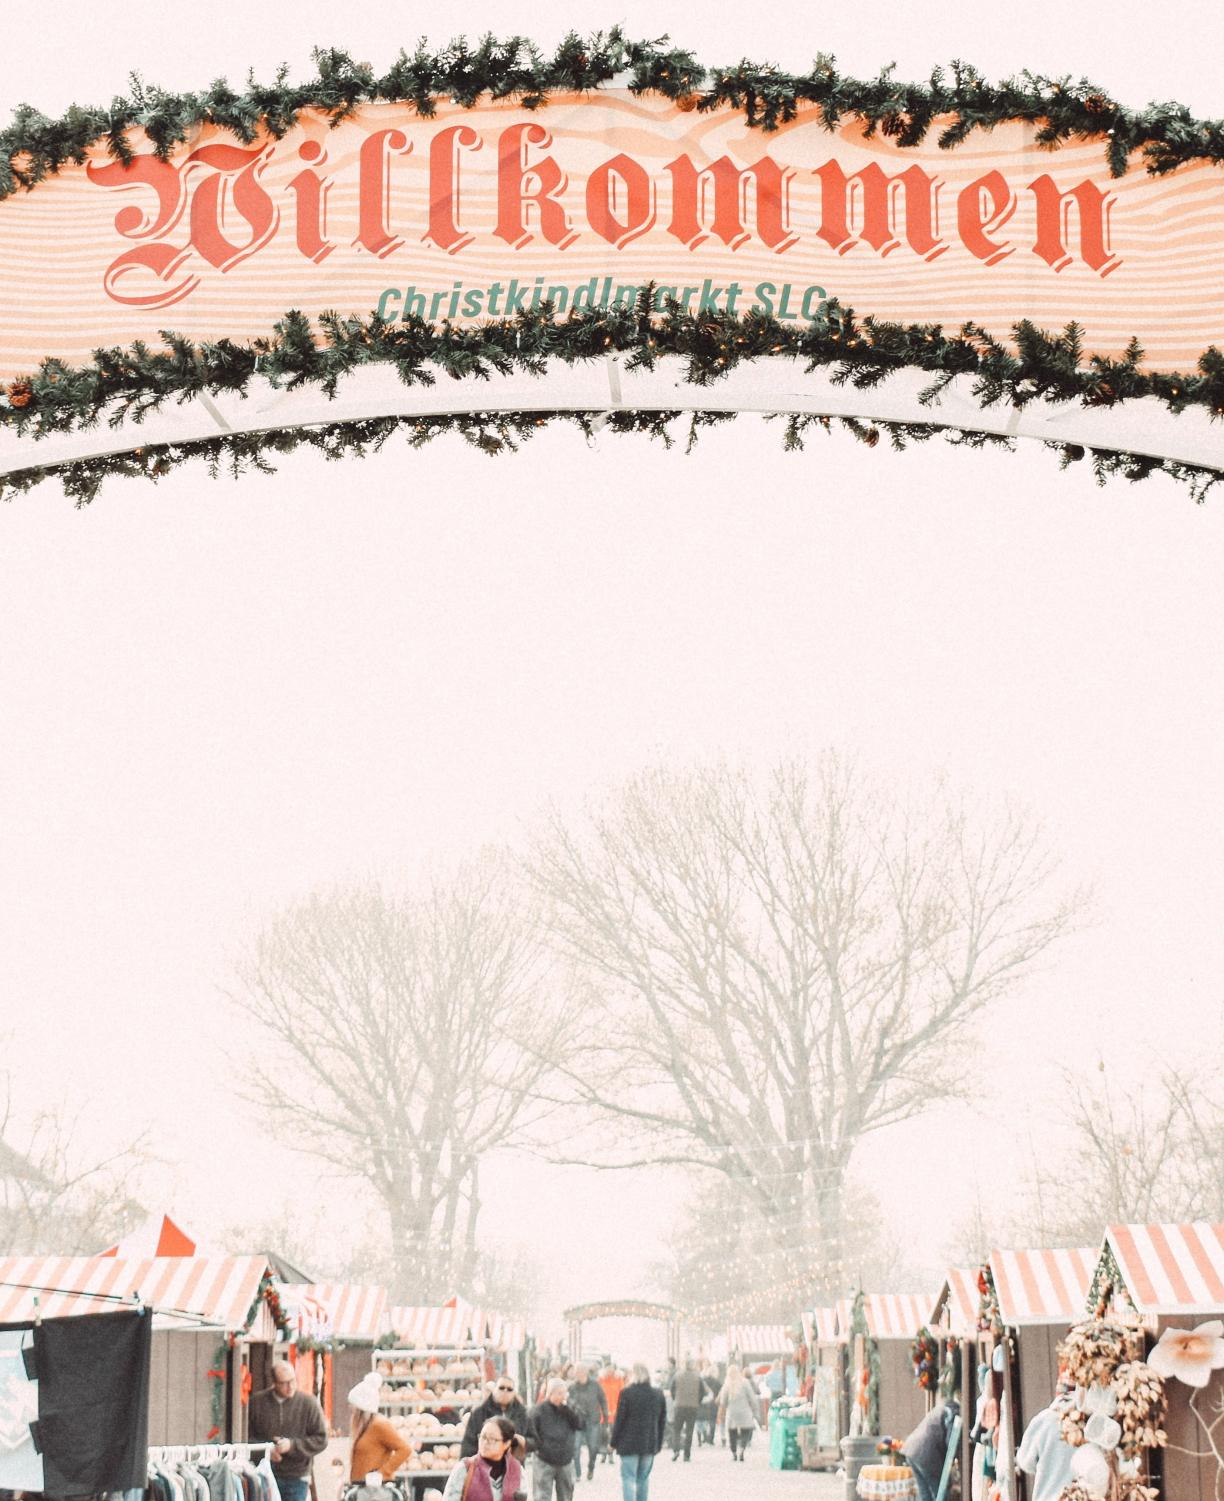 Christkindlmackt ran from December 4-7 at This is the Place Heritage Park